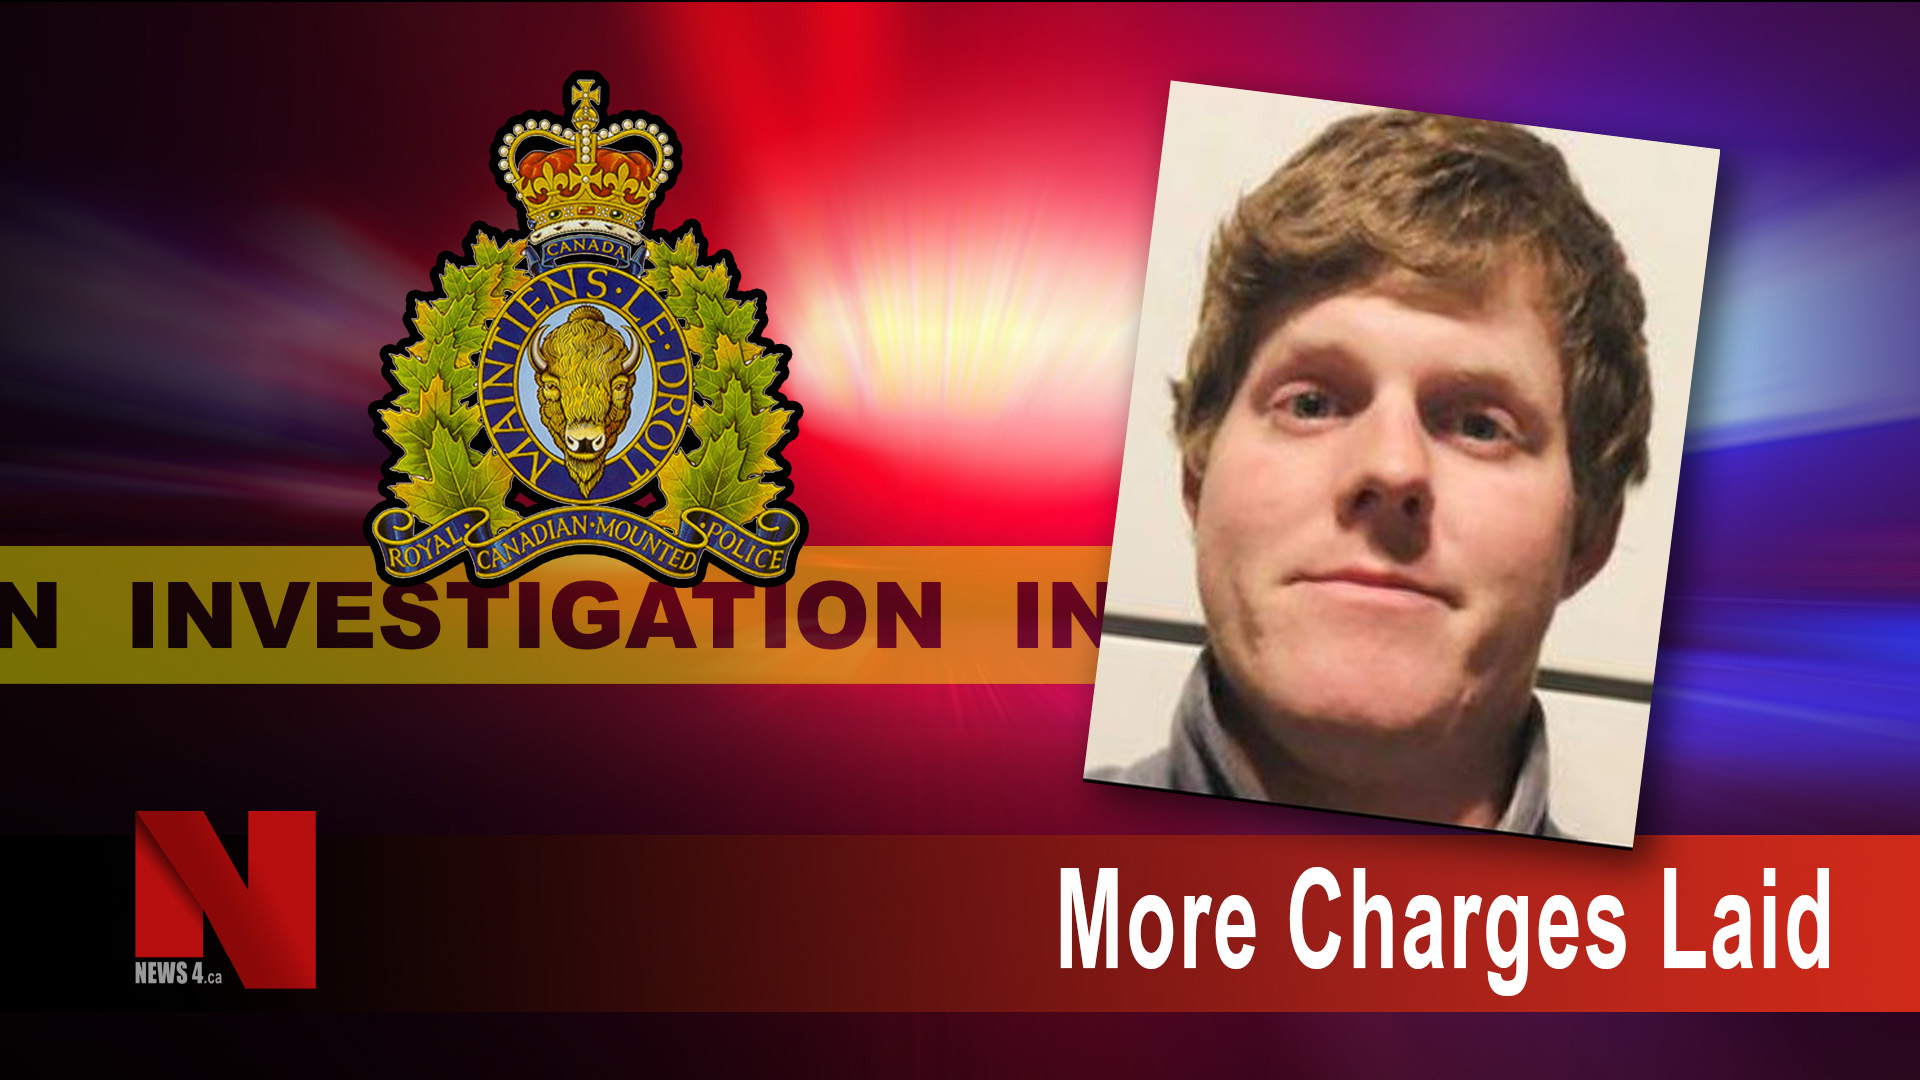 More Charges Laid